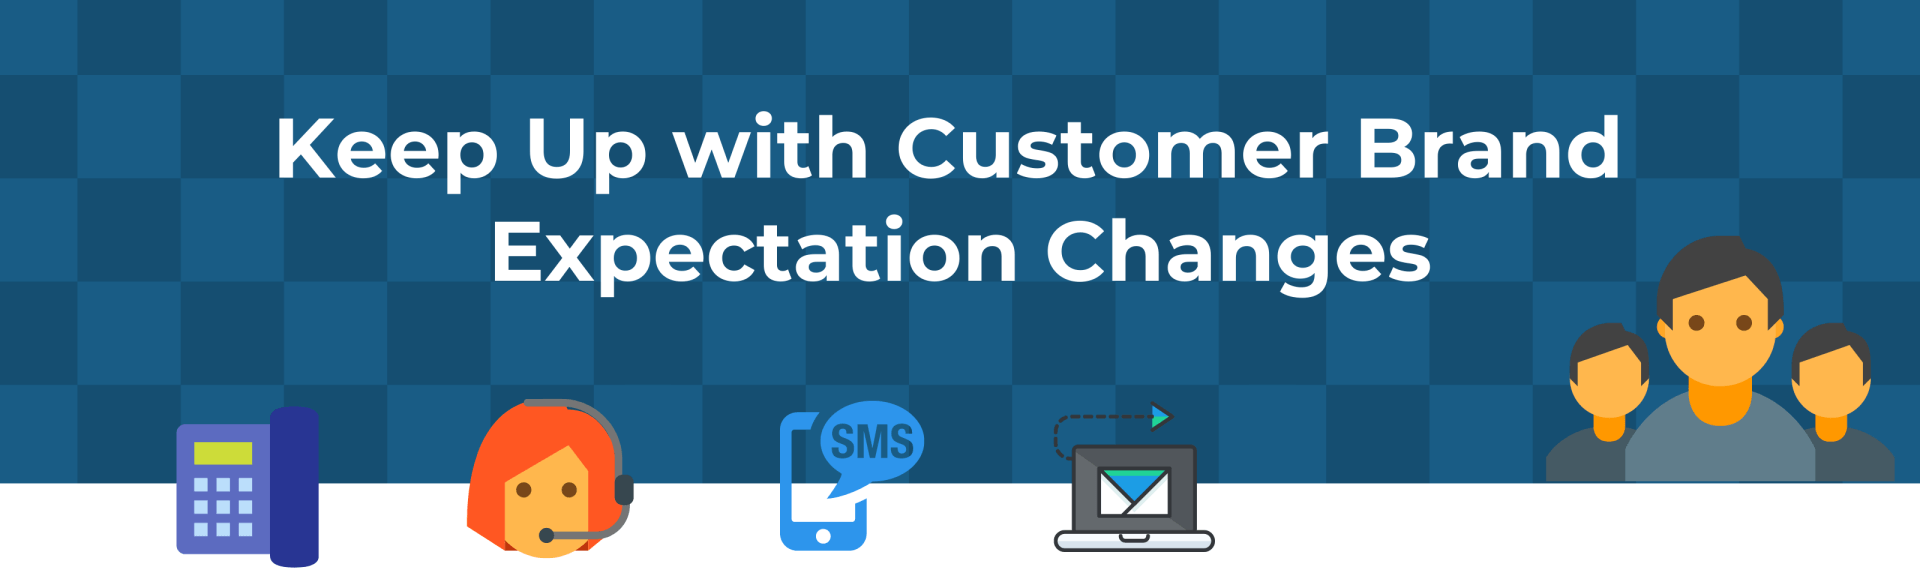 Keep Up with Customer Brand Expectation Changes